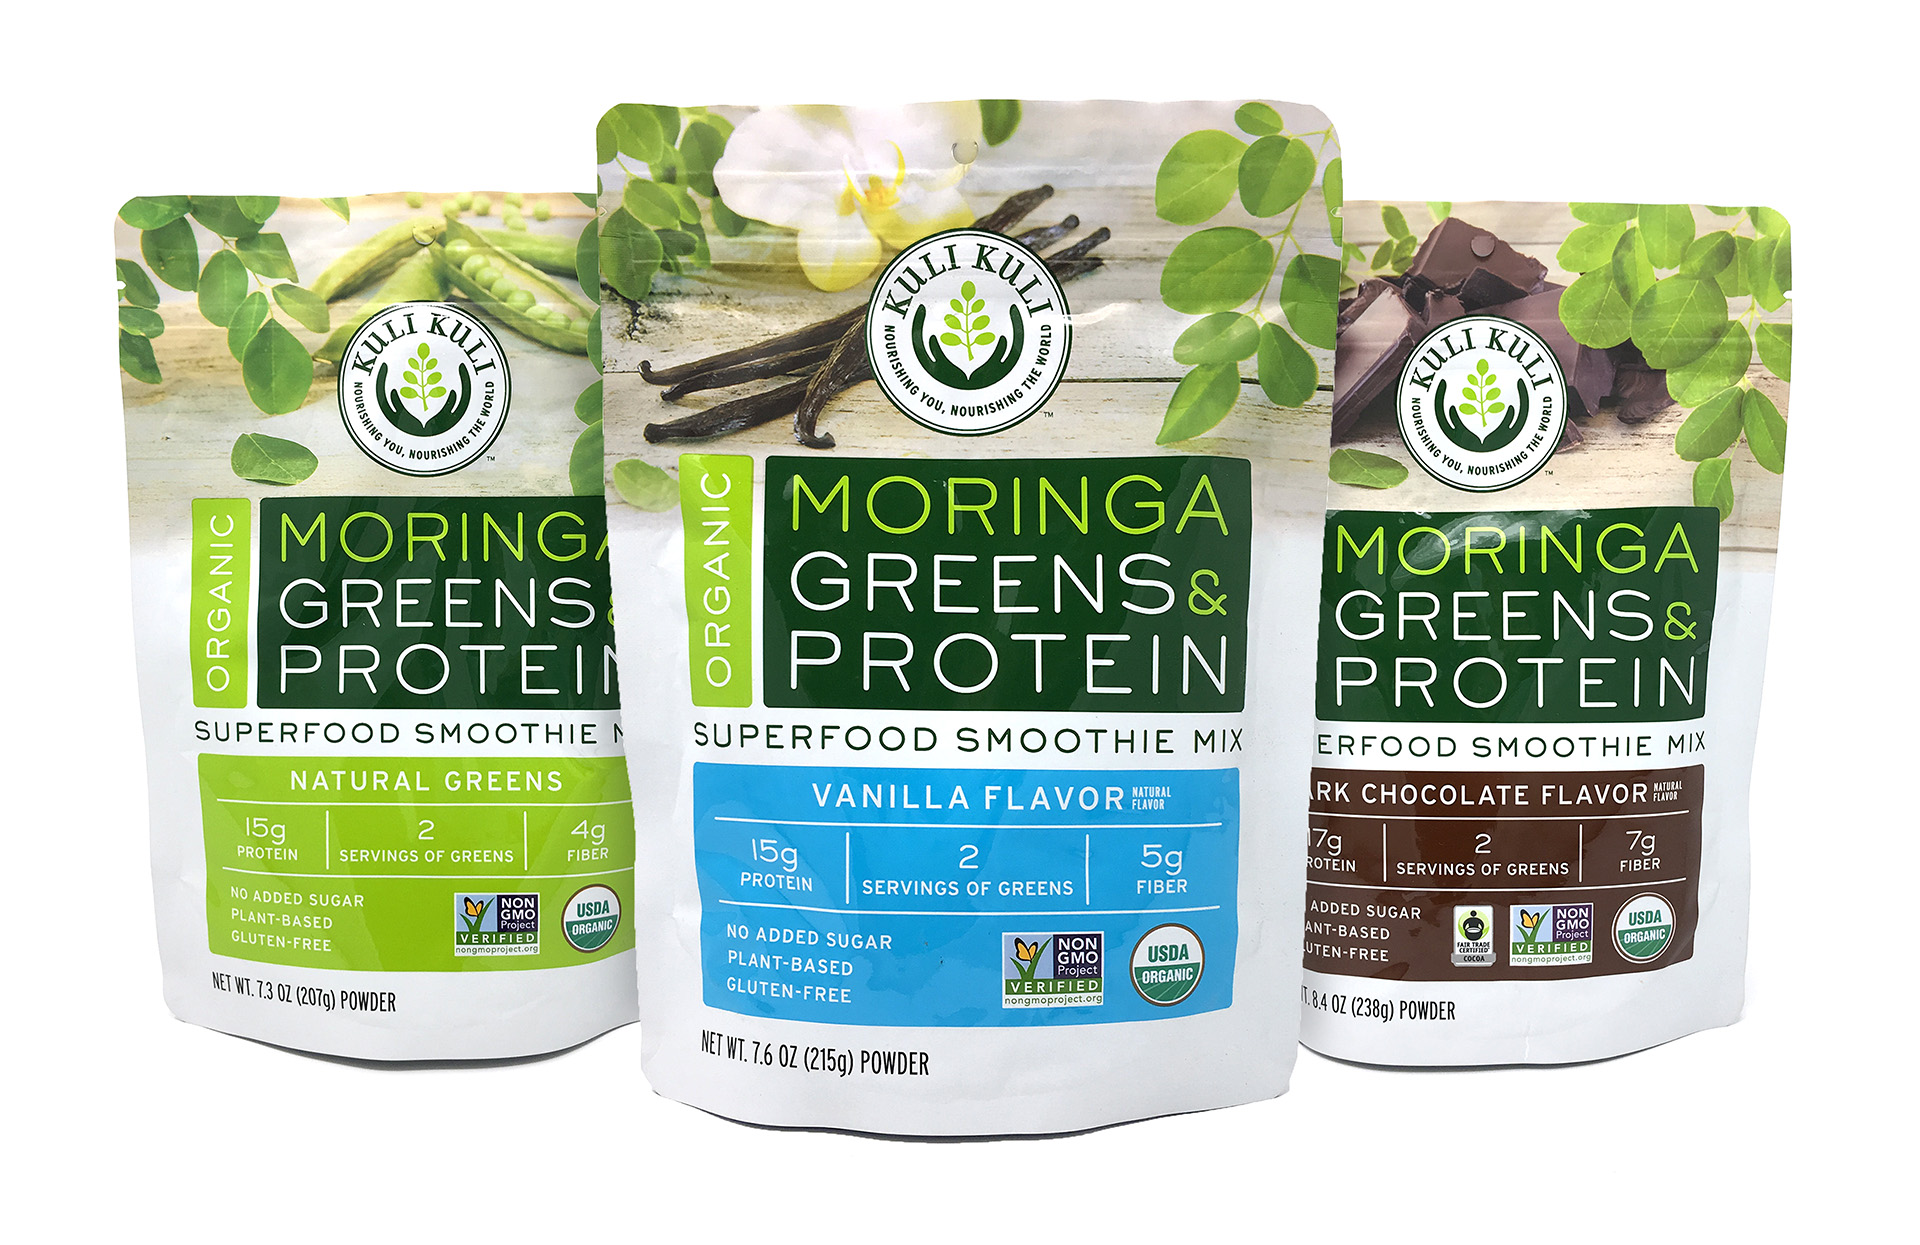 Kuli Kuli Moringa Greens & Protein Superfood Smoothie Mix on White